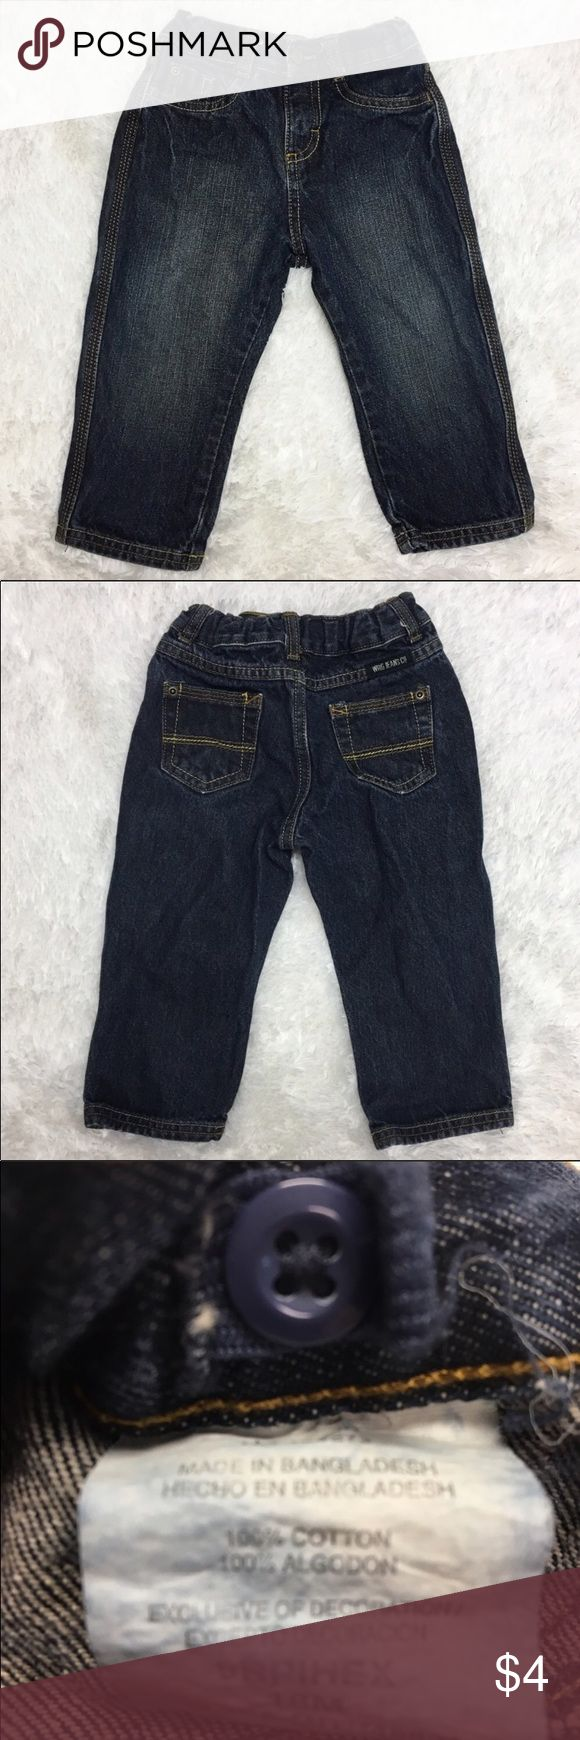 Wrangler Dark Wash Denim Jeans Wrangler Dark Wash Denim Jeans  🔘Description: Baby Toddler Boy Size 18 Months Dark Wash Wrangler Jeans with Adjustable Waist Bands 🔘Condition: Excellent 🔘Material: 100% Cotton 🔘Measurements:      Hip to Hip - 9 Inches      Inseam - 11 Inches           💎 Price is Firm💎 ⭐️ 15% Off All Bundles! 🛍                  💞Thanks for stopping by! 😘 Inventory: A Bottoms Jeans